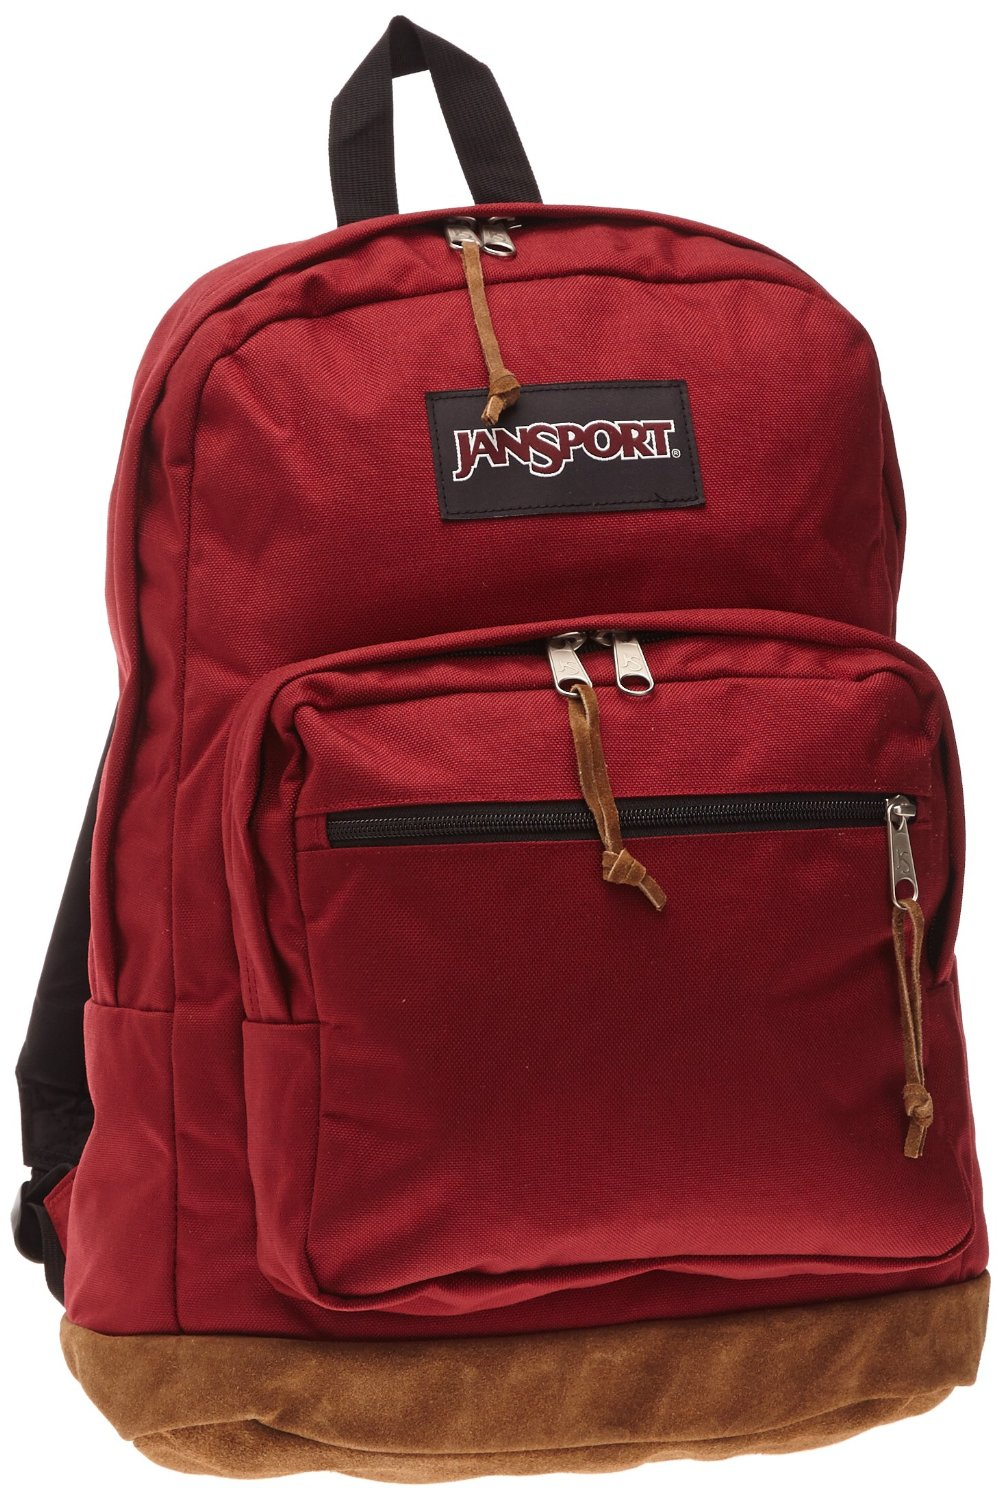 How Much Do Jansport Backpacks Cost hP8GEr4e